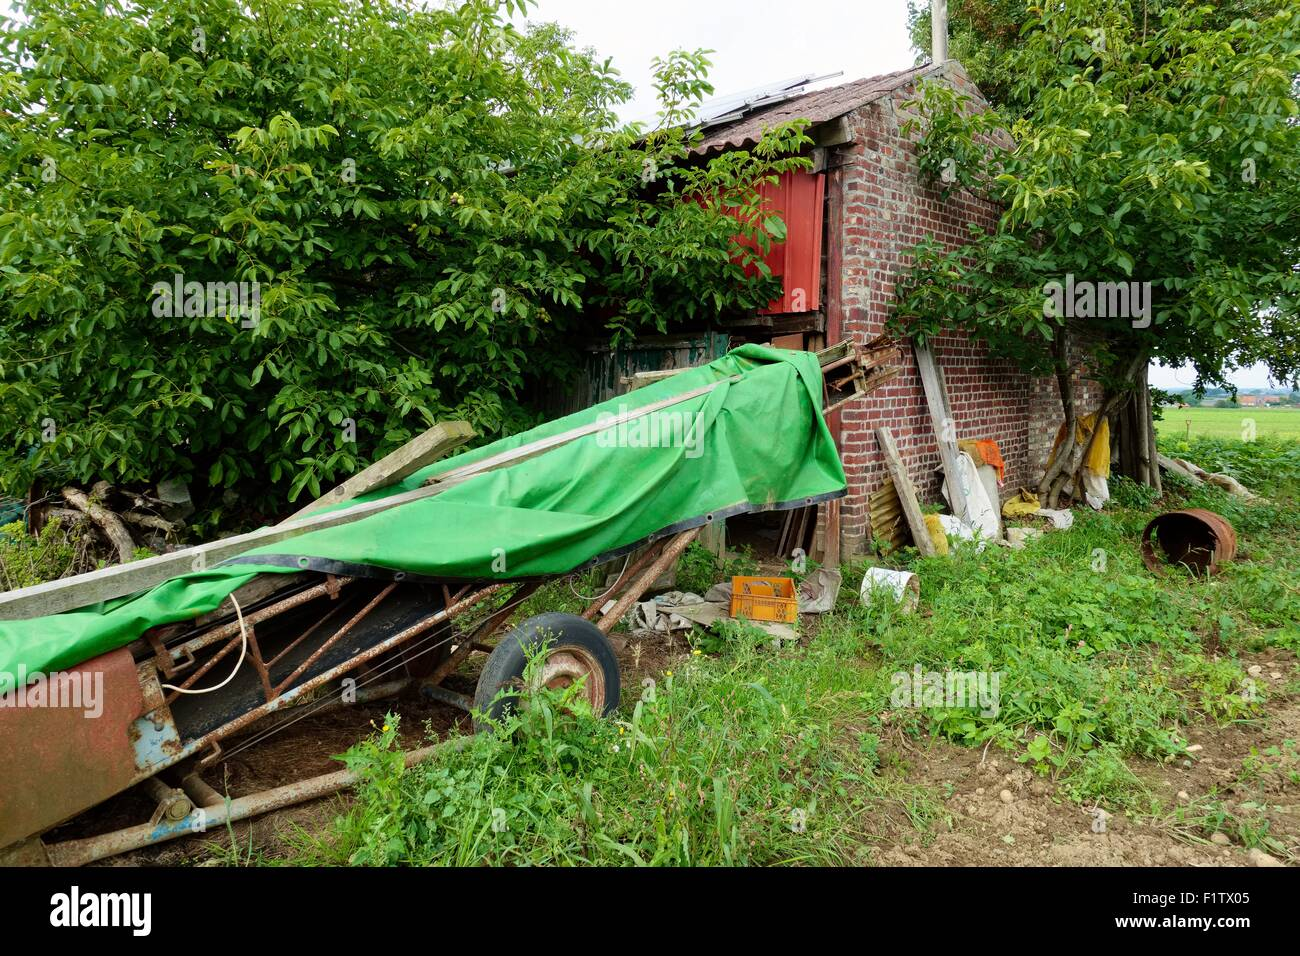 Old shed with skip - Stock Image